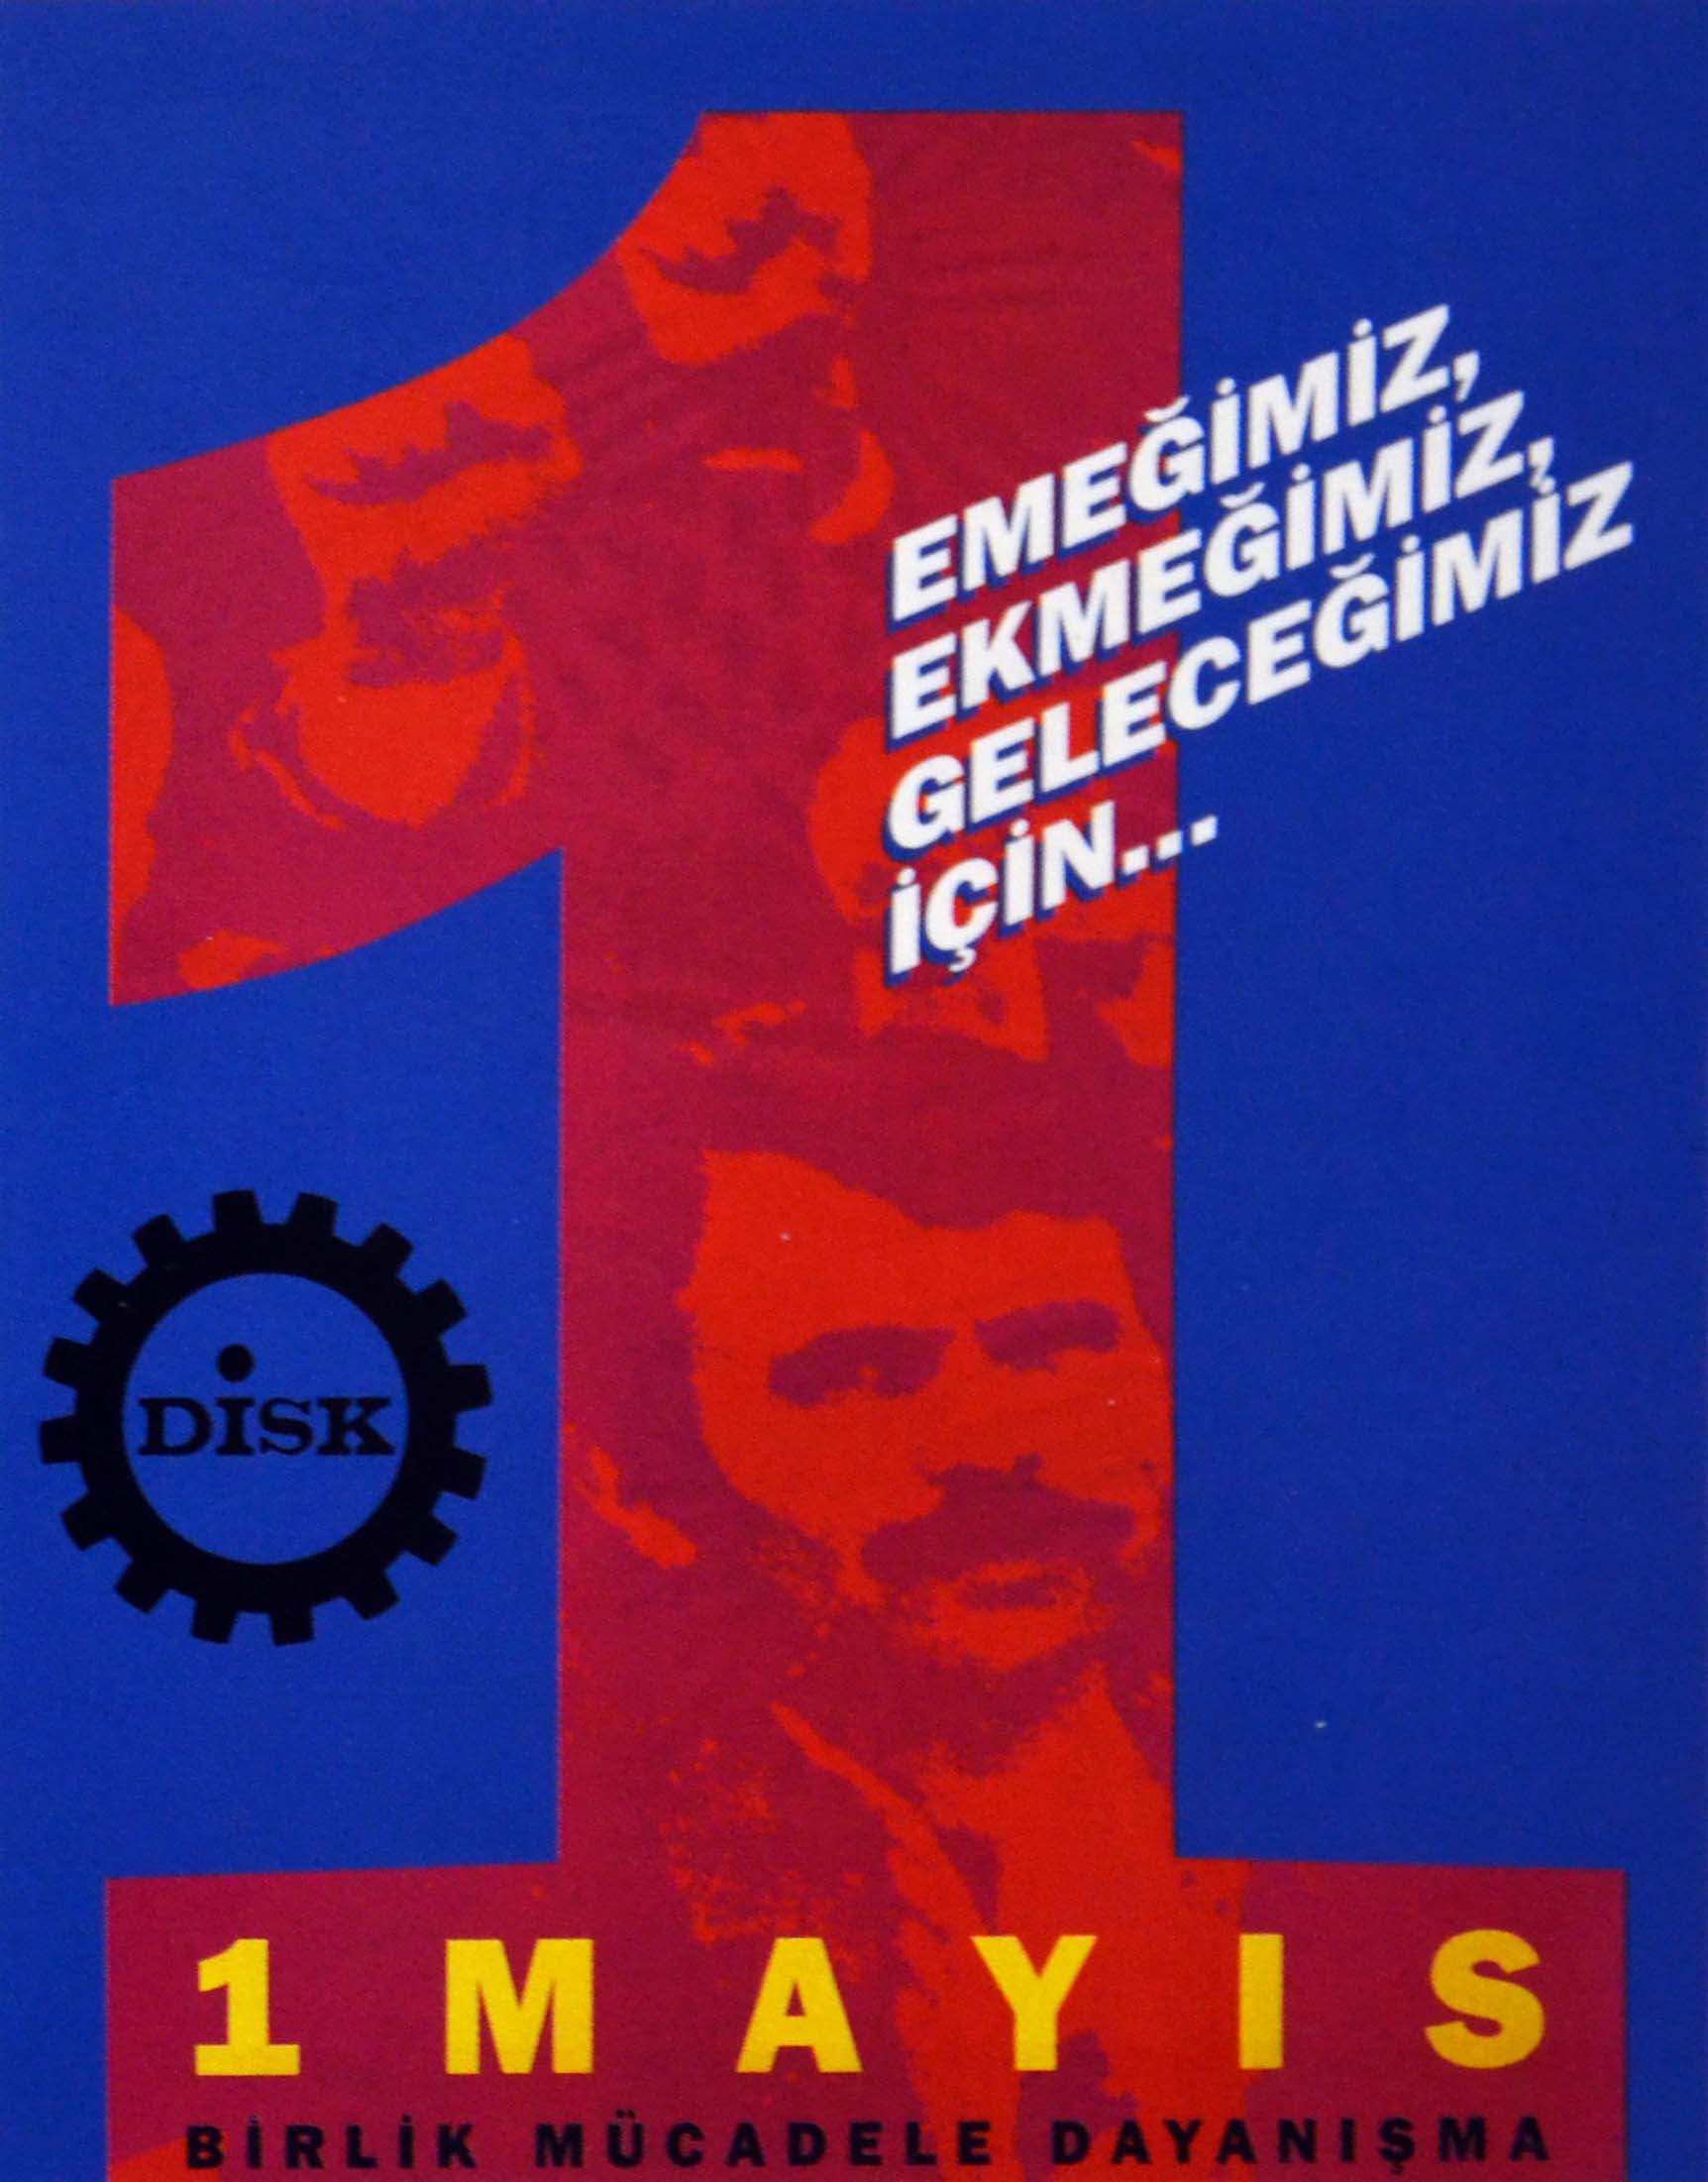 1994 1m DİSK